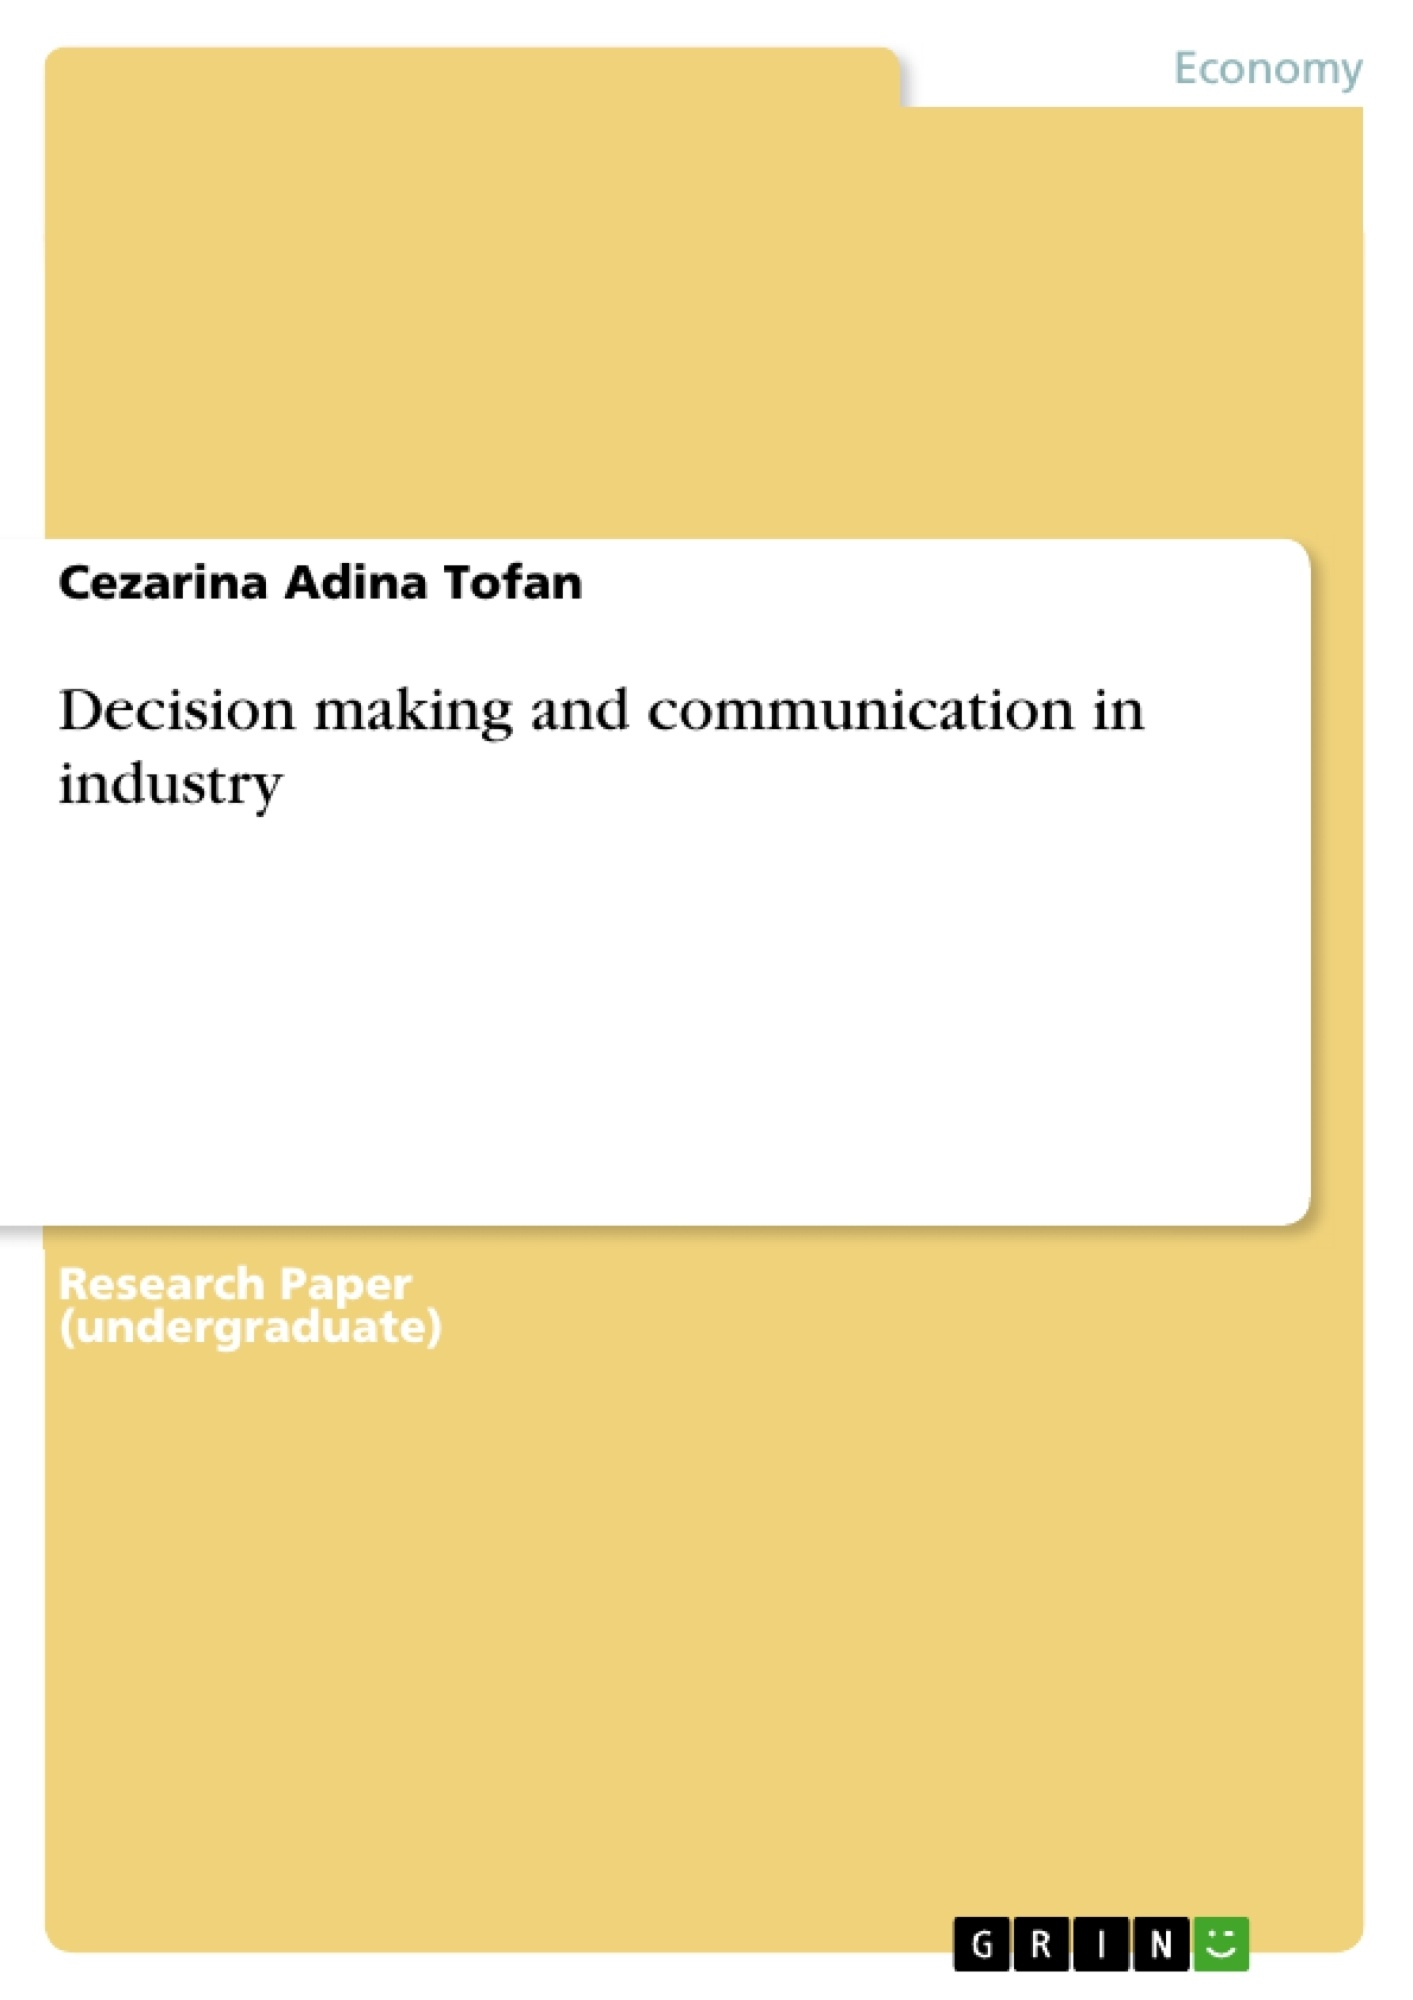 Title: Decision making and communication in industry